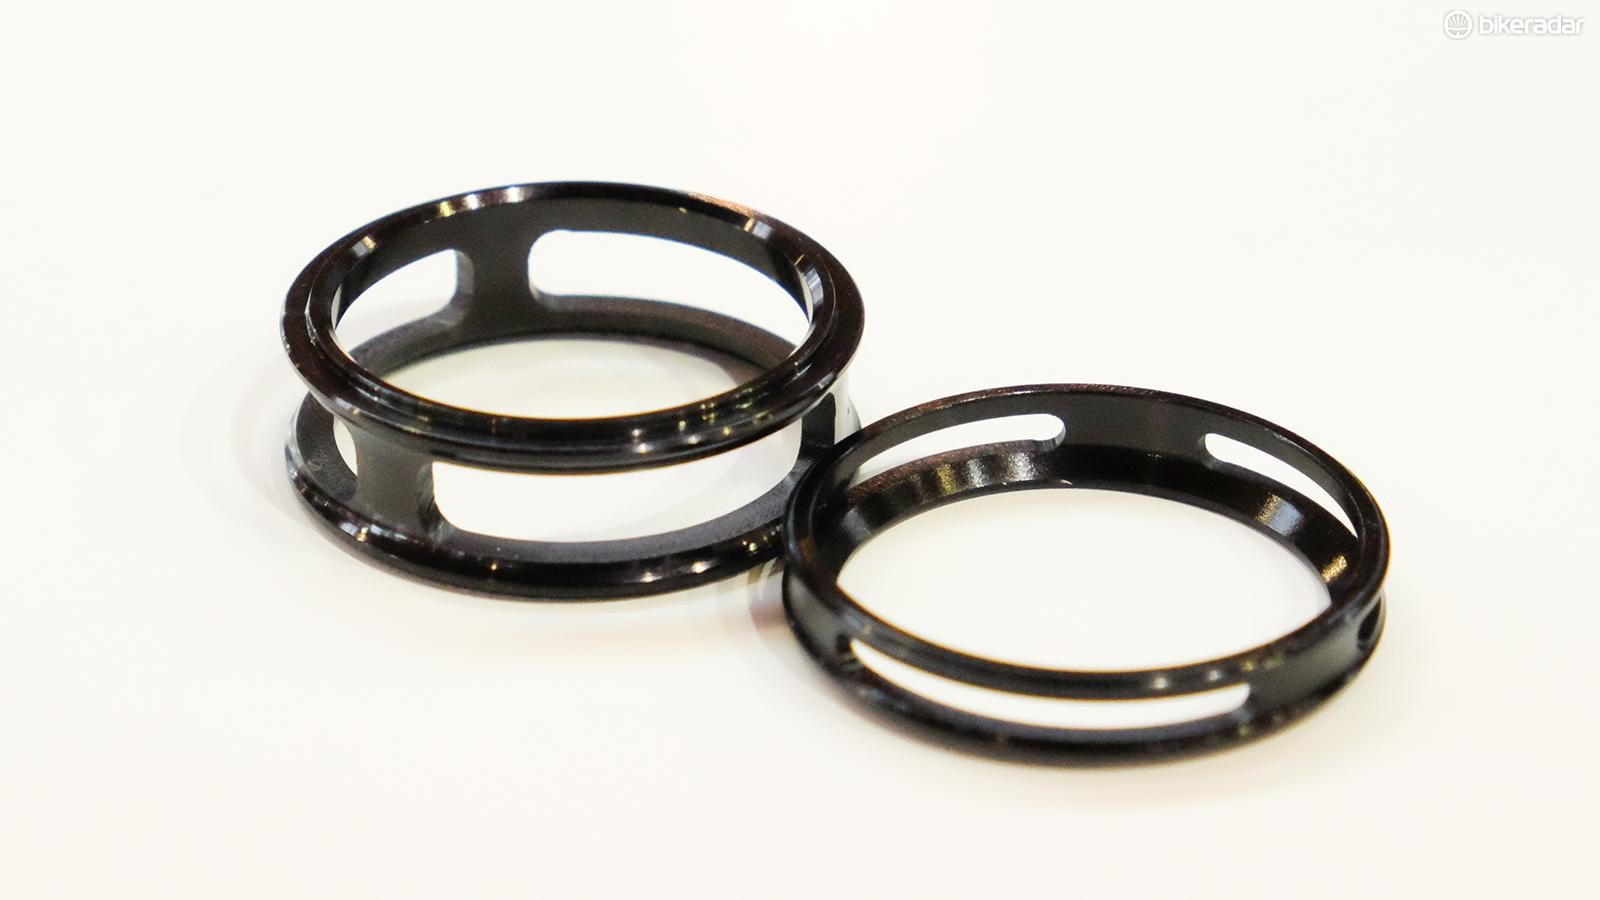 There are additional weight savings to be had with these barely-there spacers